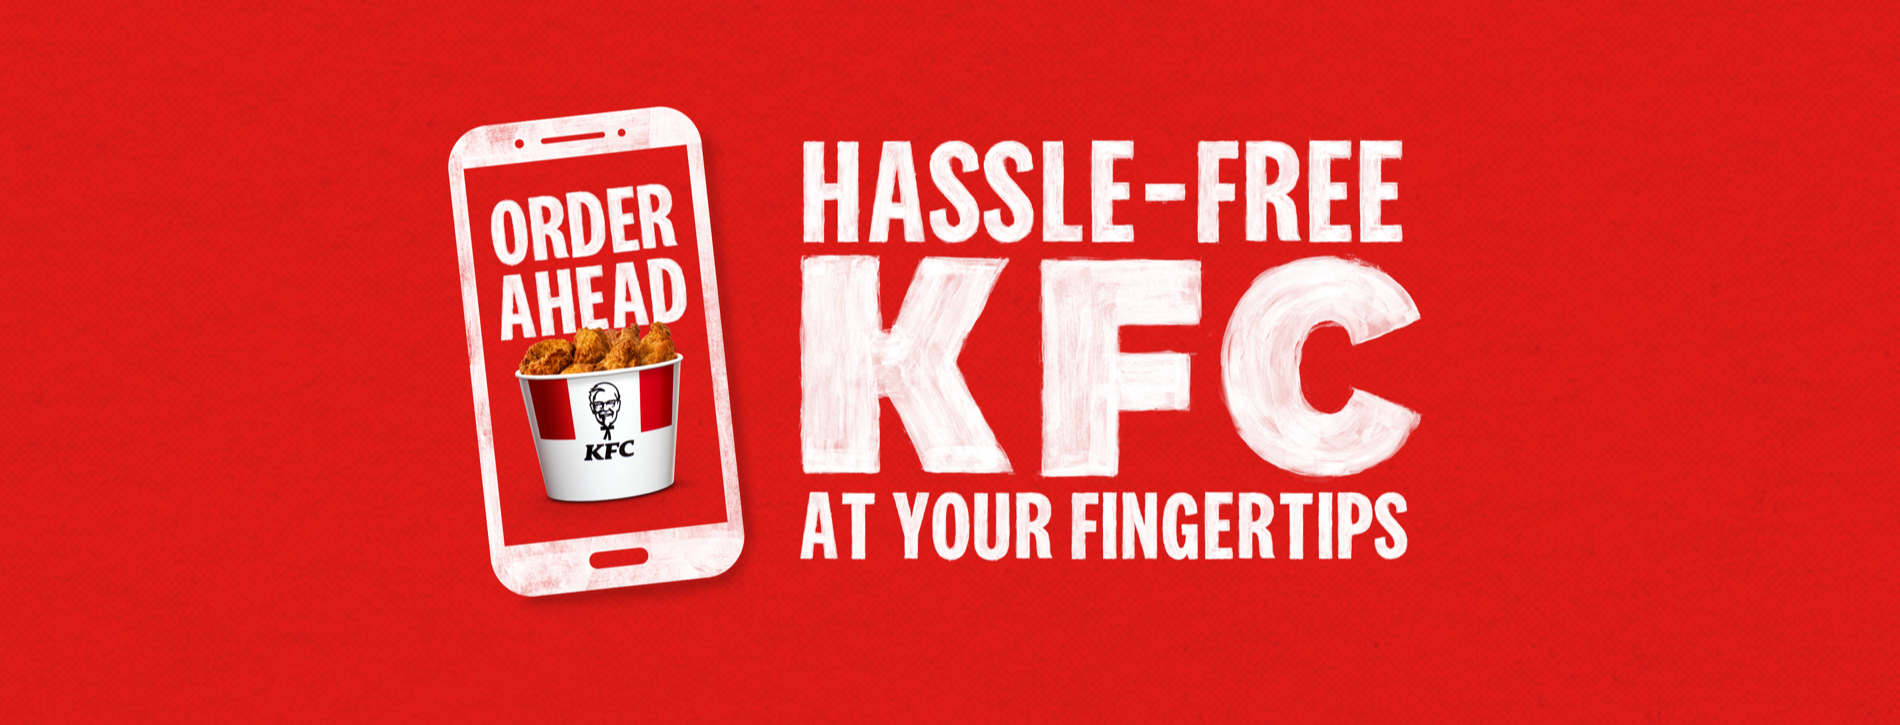 Hassle-free KFC at your fingertips